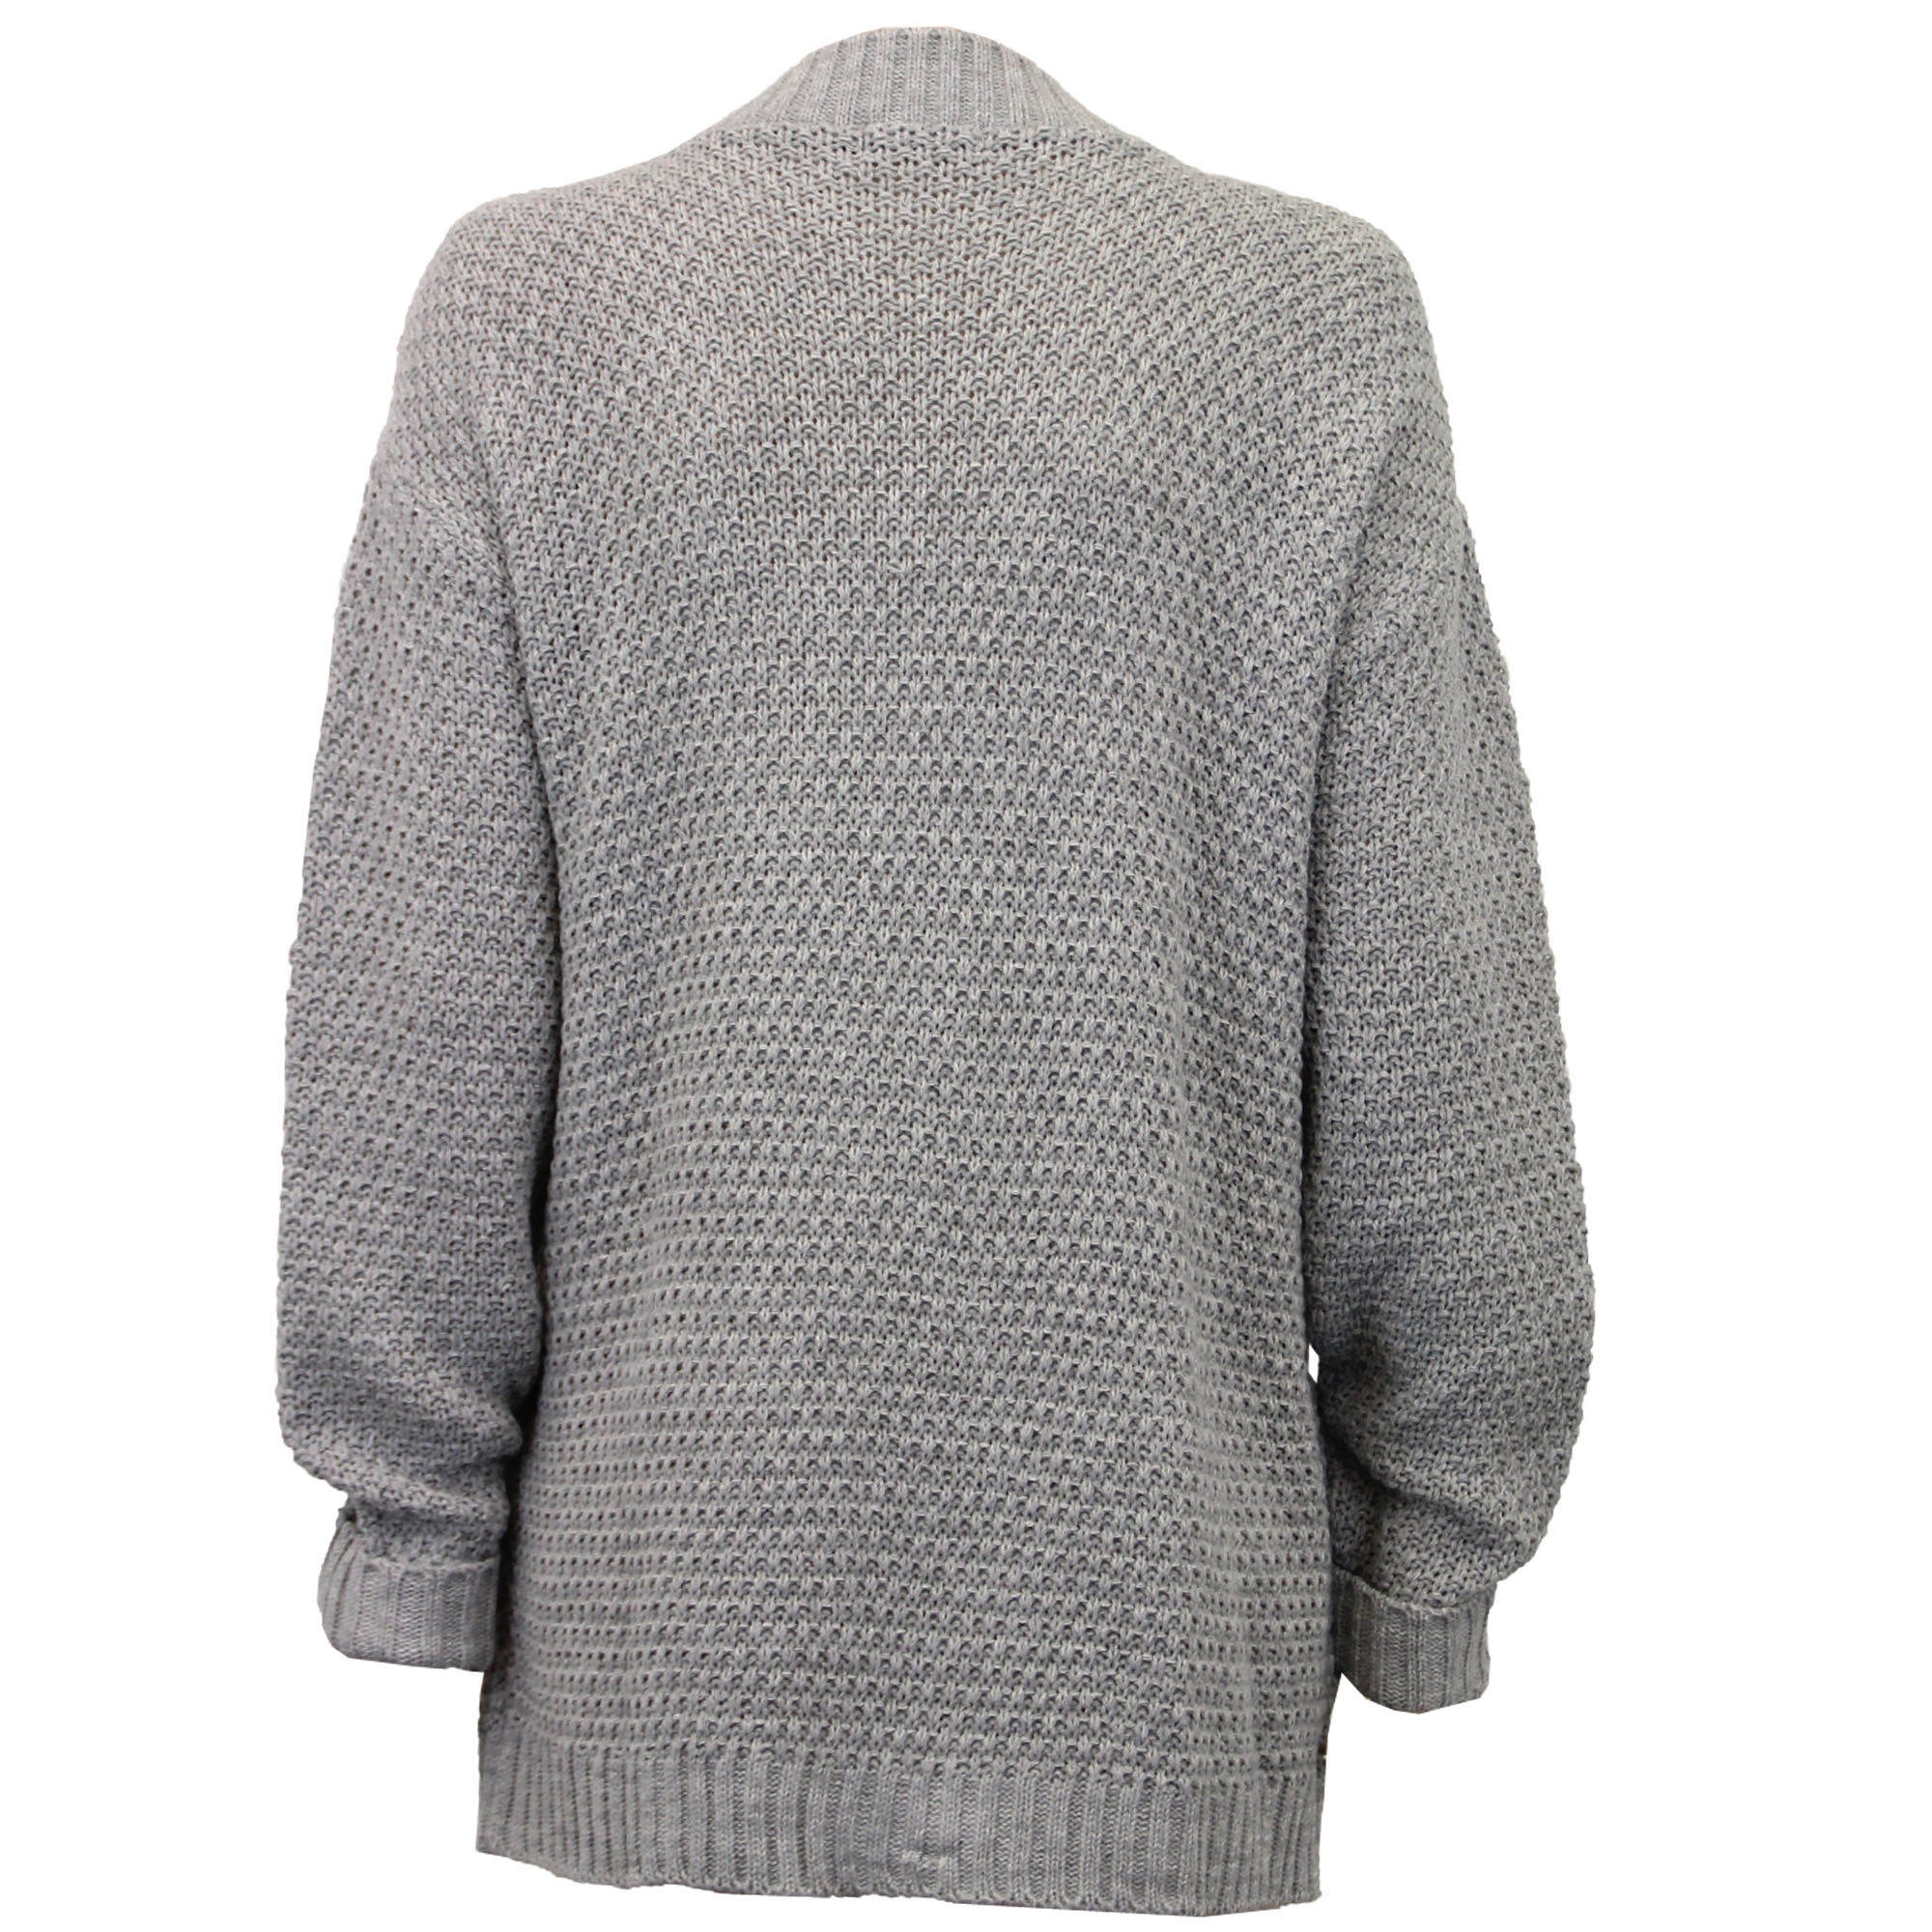 Ladies-Cardigans-Womens-Knitted-Jumper-Cable-Jacquard-Boyfriend-Chunky-Winter